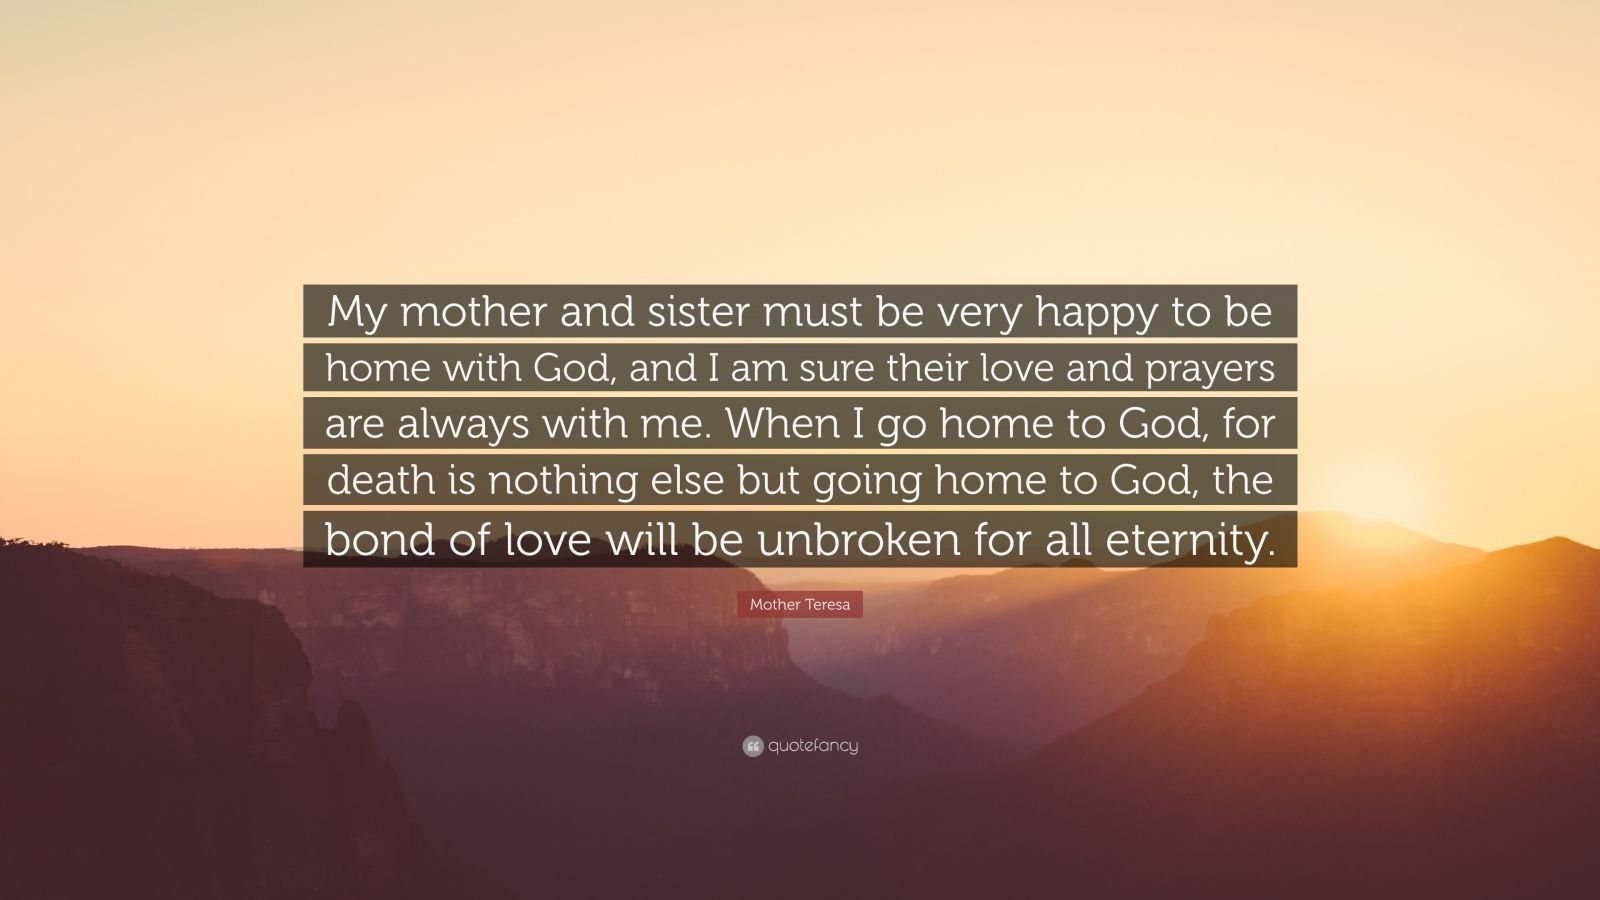 """Mother Teresa Quote: """"My mother and sister must be very happy to be home with God, and I am sure their love and prayers are always with me. When I go home to God, for death is nothing else but going home to God, the bond of love will be unbroken for all eternity."""""""